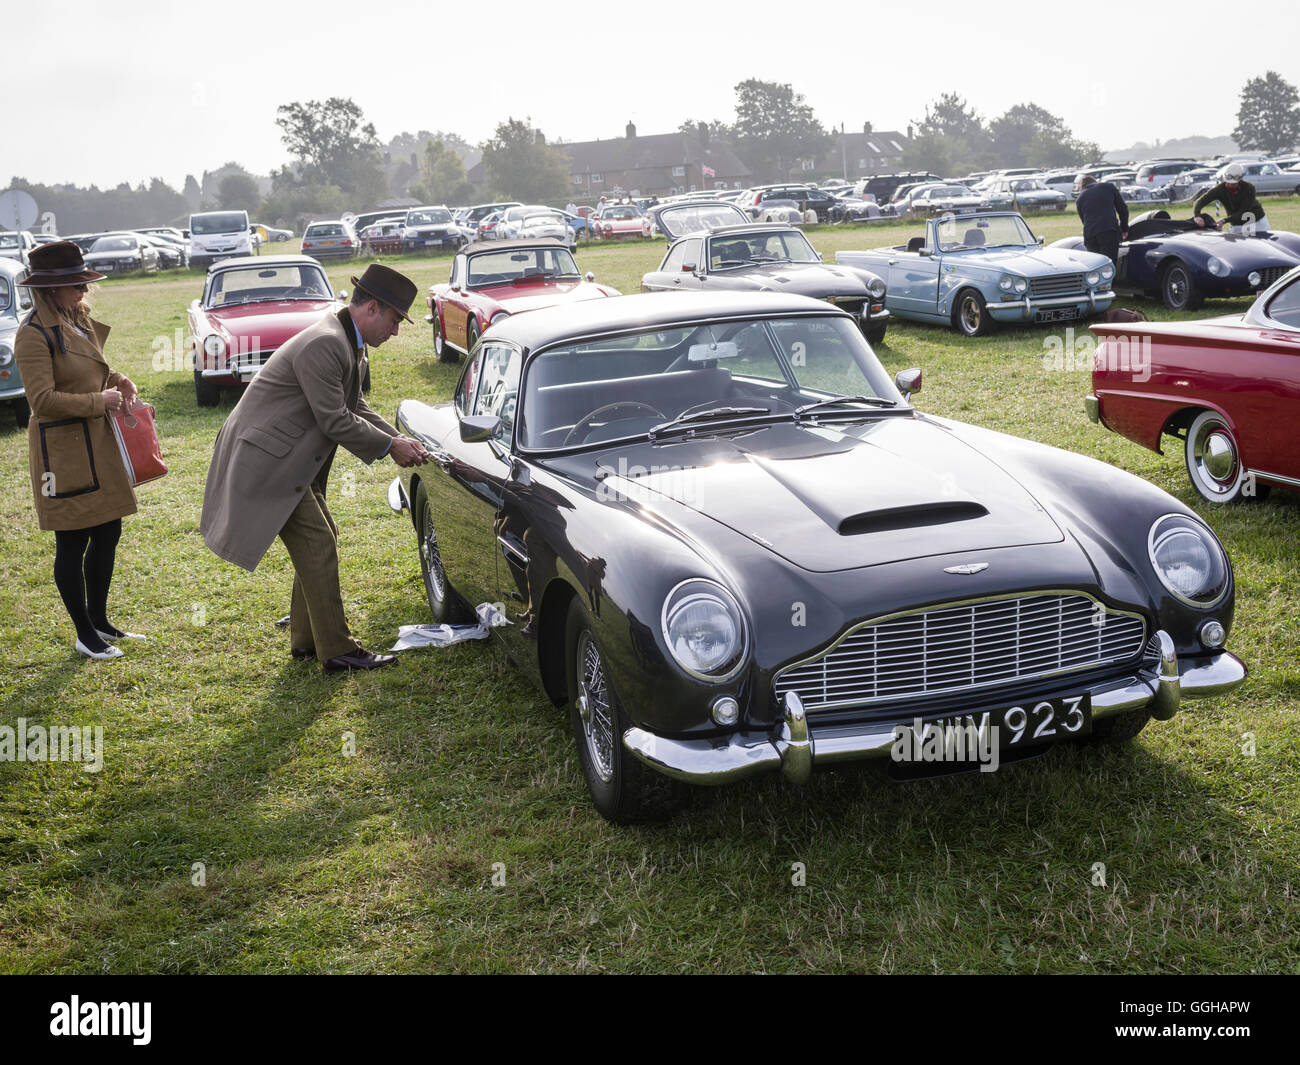 Aston Martin DB5, visitor parking area, Goodwood Revival 2014, Racing Sport, Classic Car, Goodwood, Chichester, - Stock Image